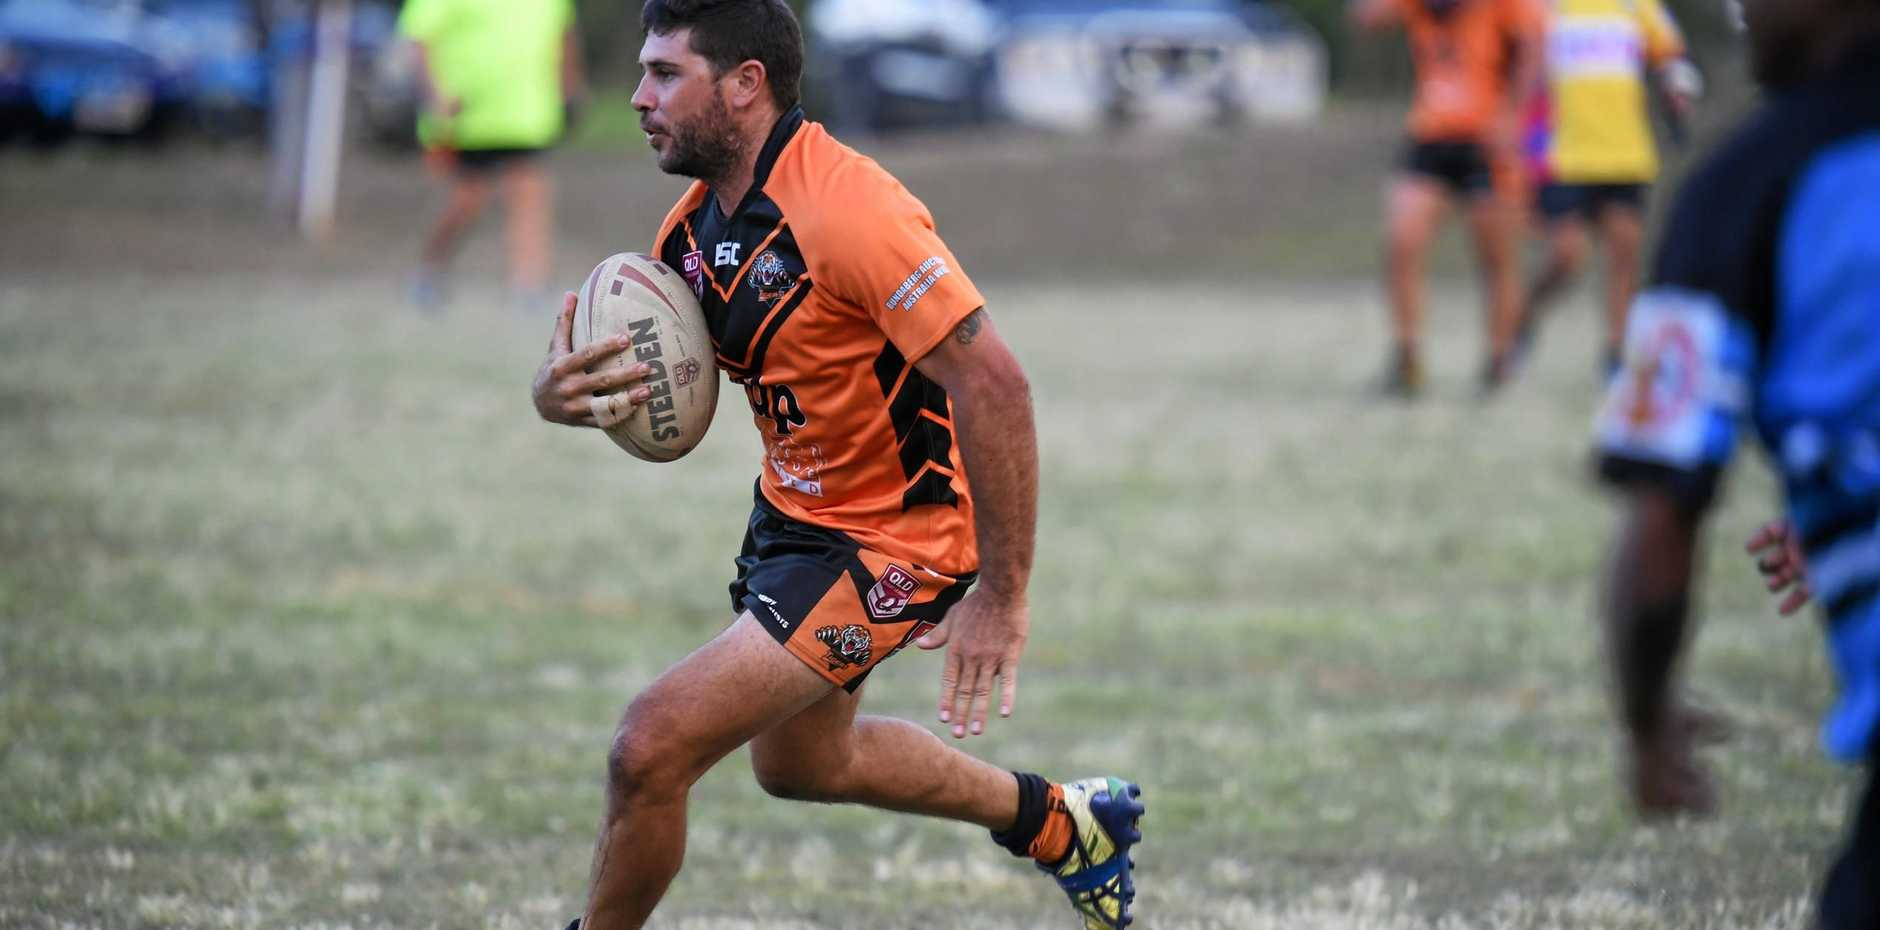 FEARLESS: Avondale Tigers captain Frank Primavera led his team in a tough win over a determined Sharks.